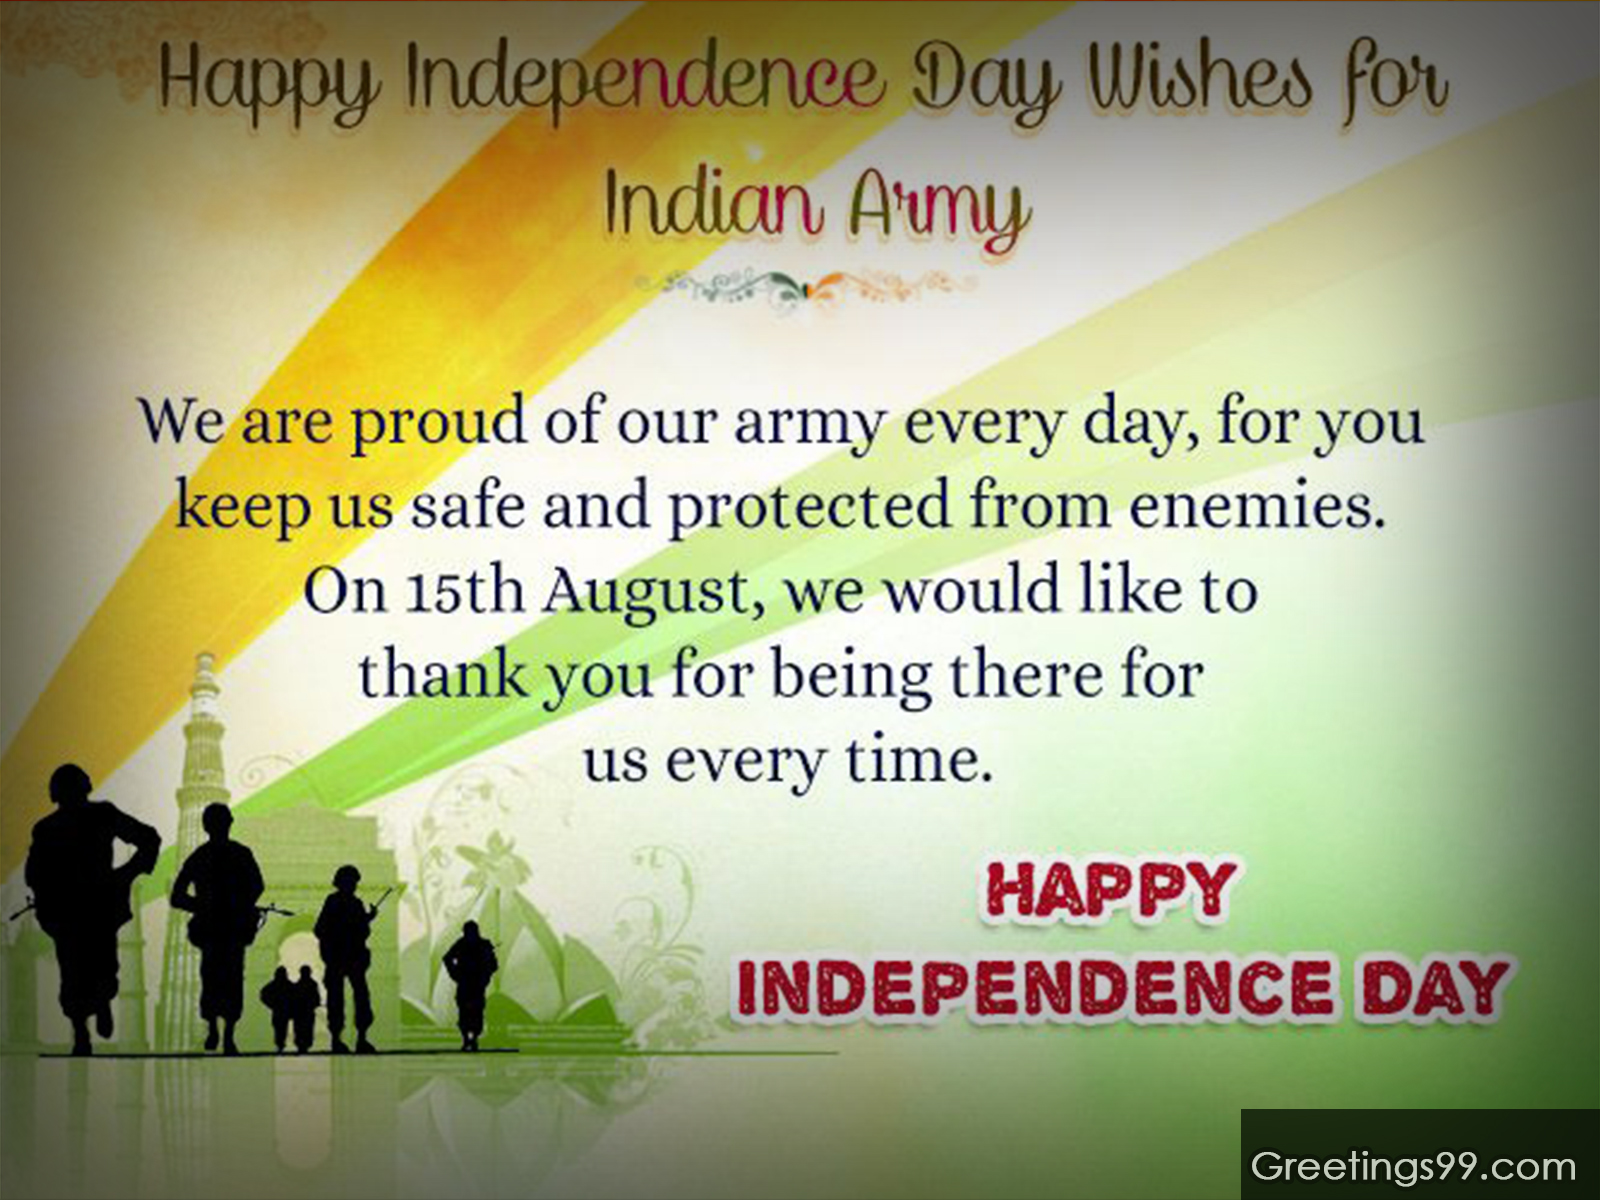 72nd Independence Day 2018 Wishes Quotes Images Greetings